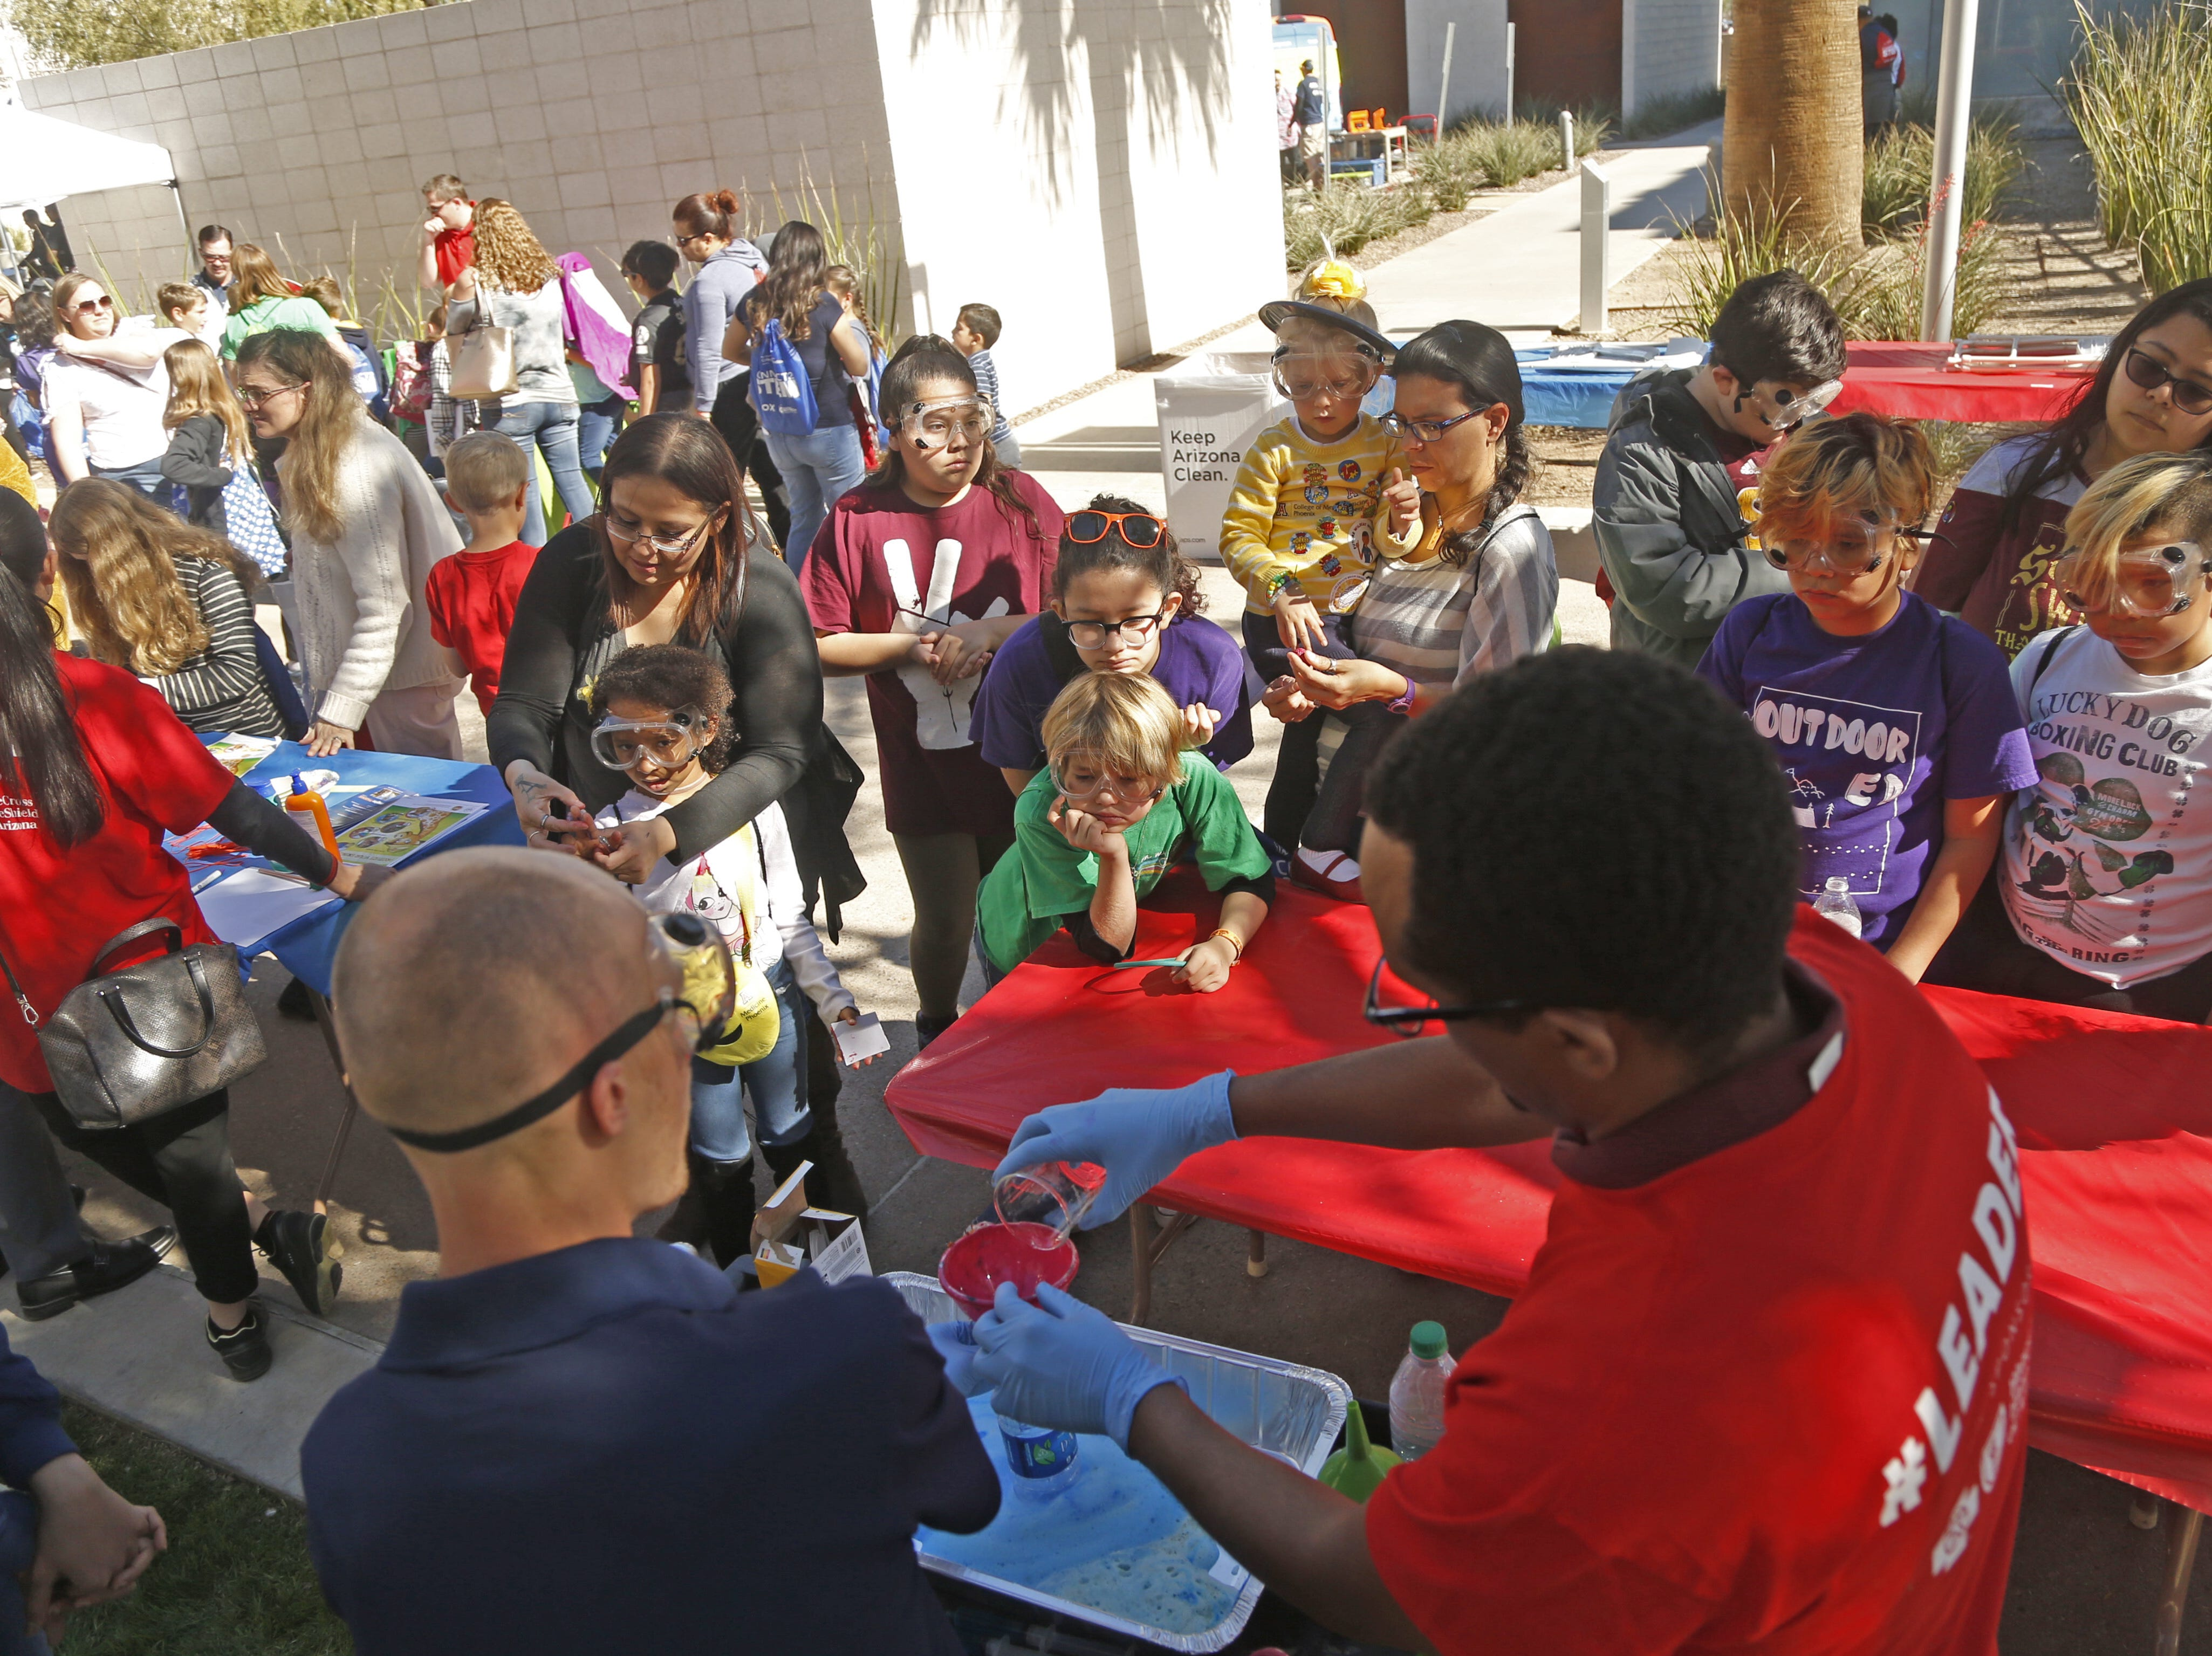 Children look at experiments watching for the chemical reaction during a STEM outreach event in downtown Phoenix, Ariz. on January 26, 2019.